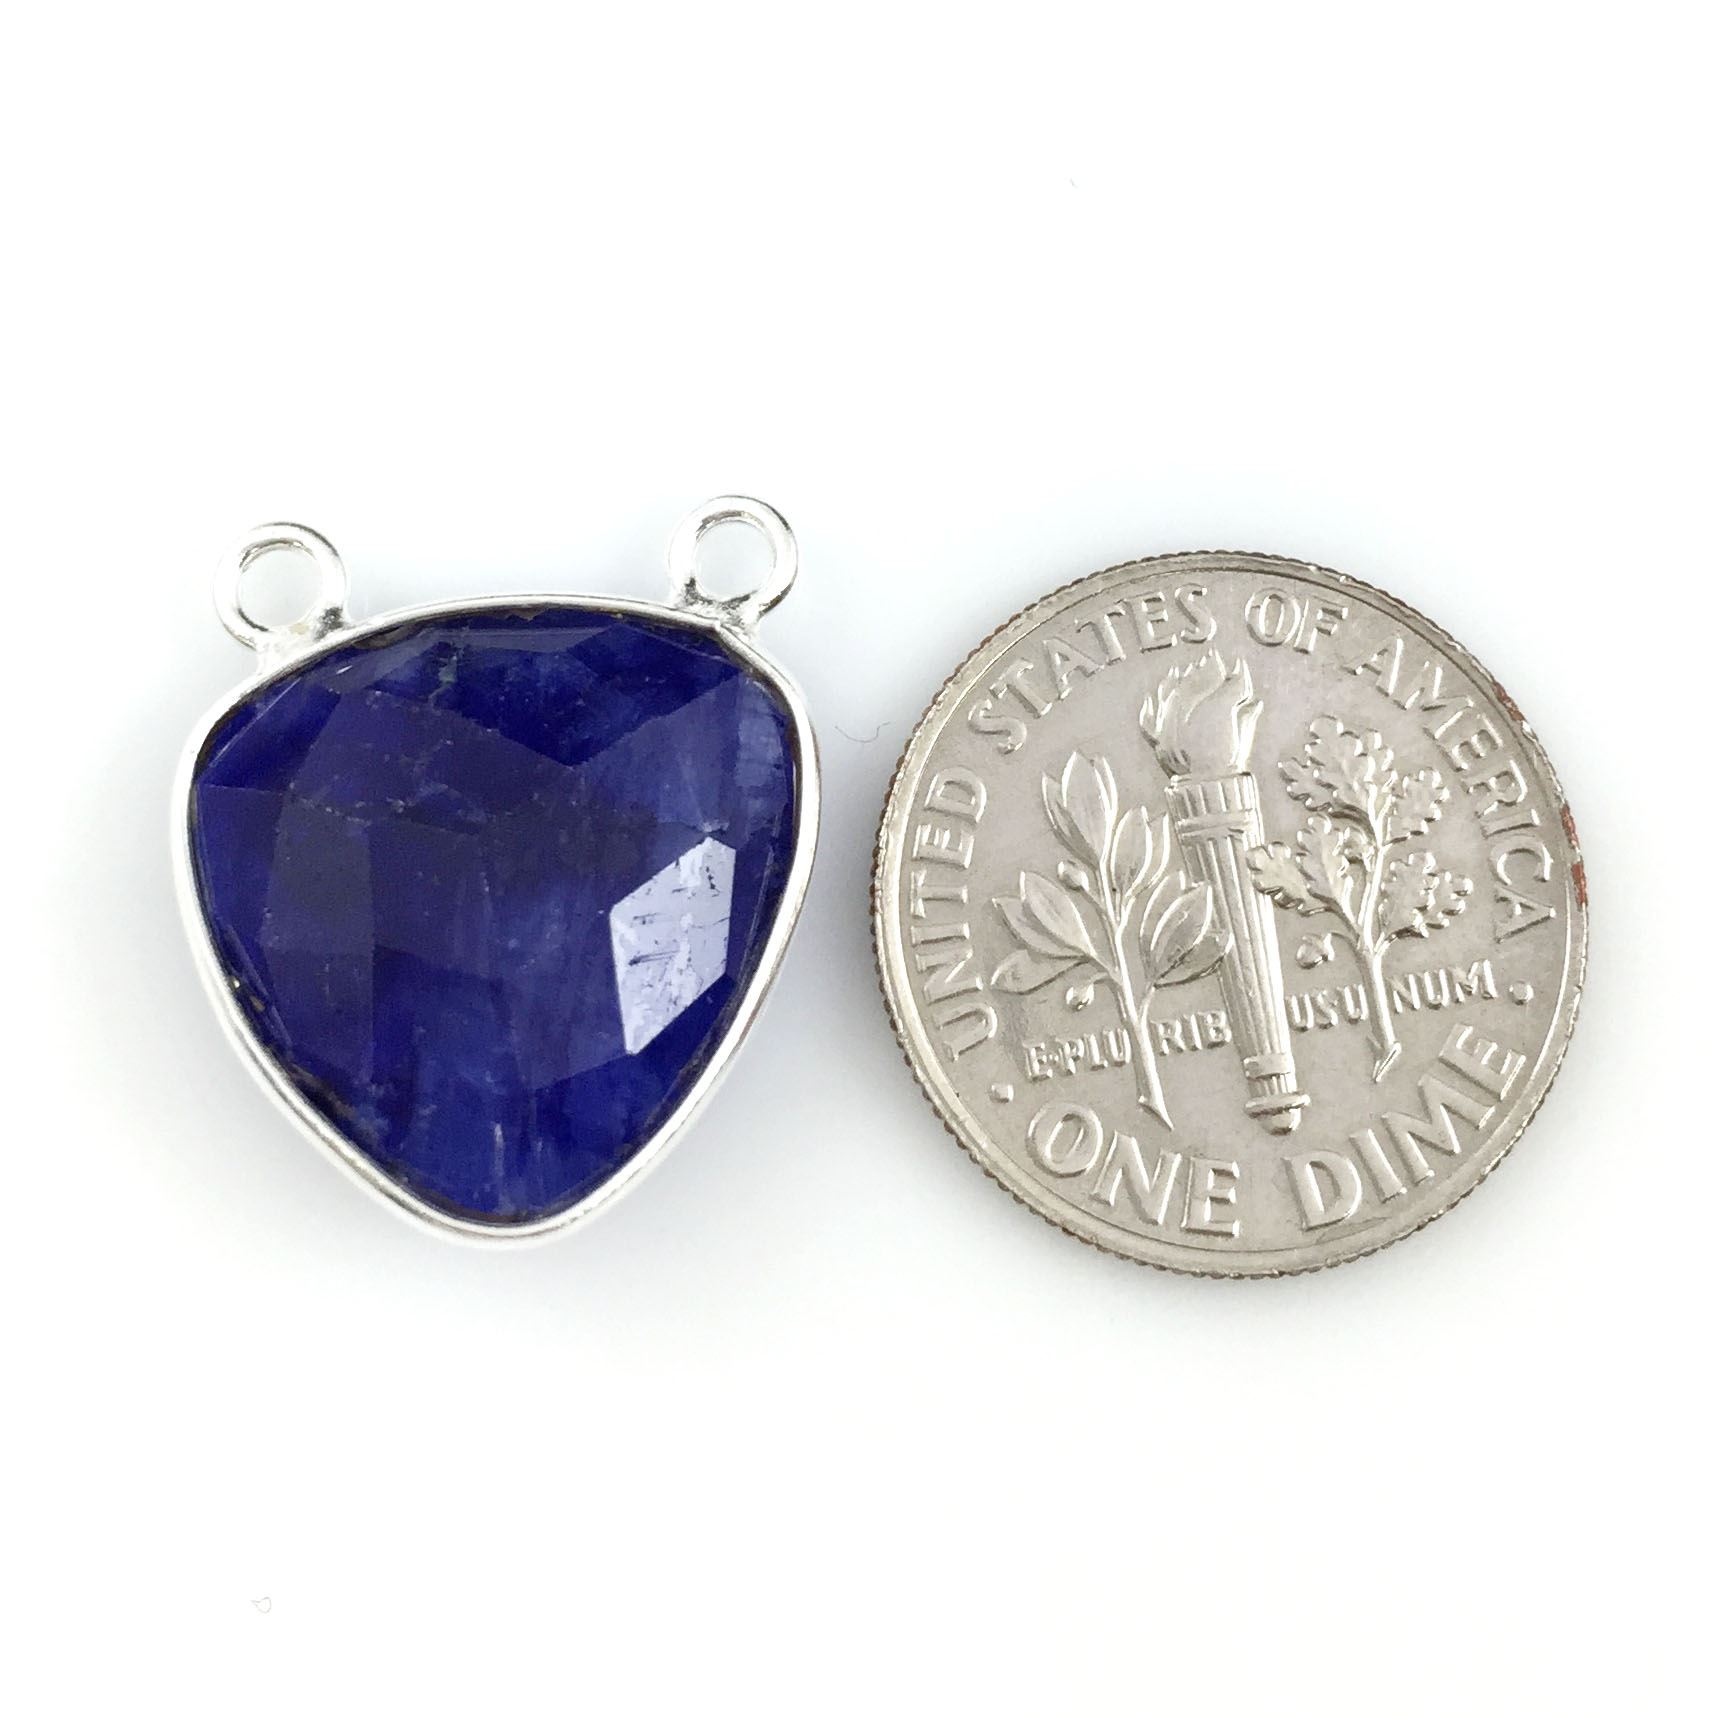 Bezel Gemstone Connector Pendant - Blue Sapphire Dyed- Sterling Silver - Small Trillion Shaped Faceted - 15mm - 1 piece